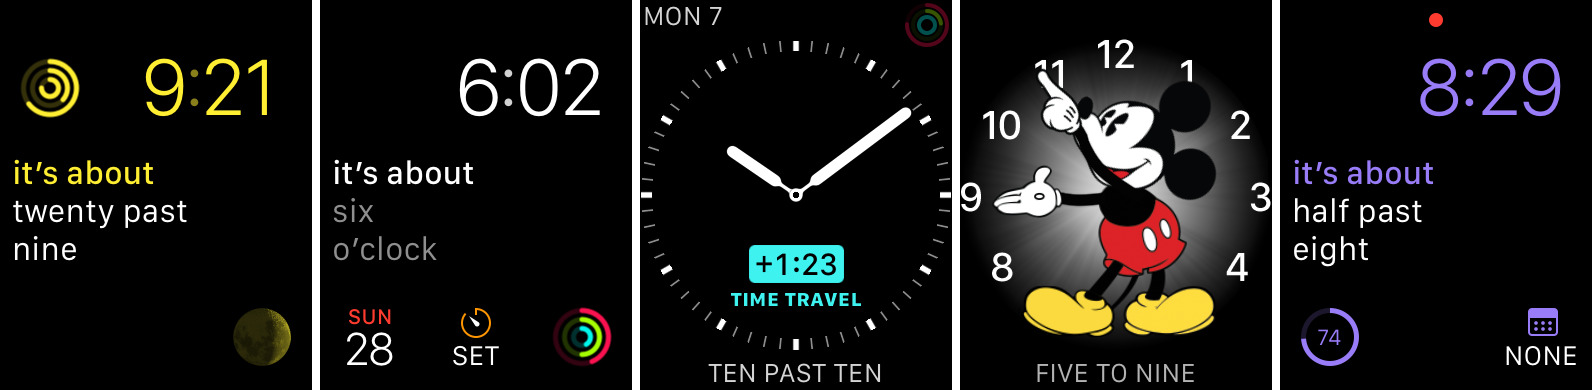 Roughly 1.1 for iOS Apple Watch screenshot 001